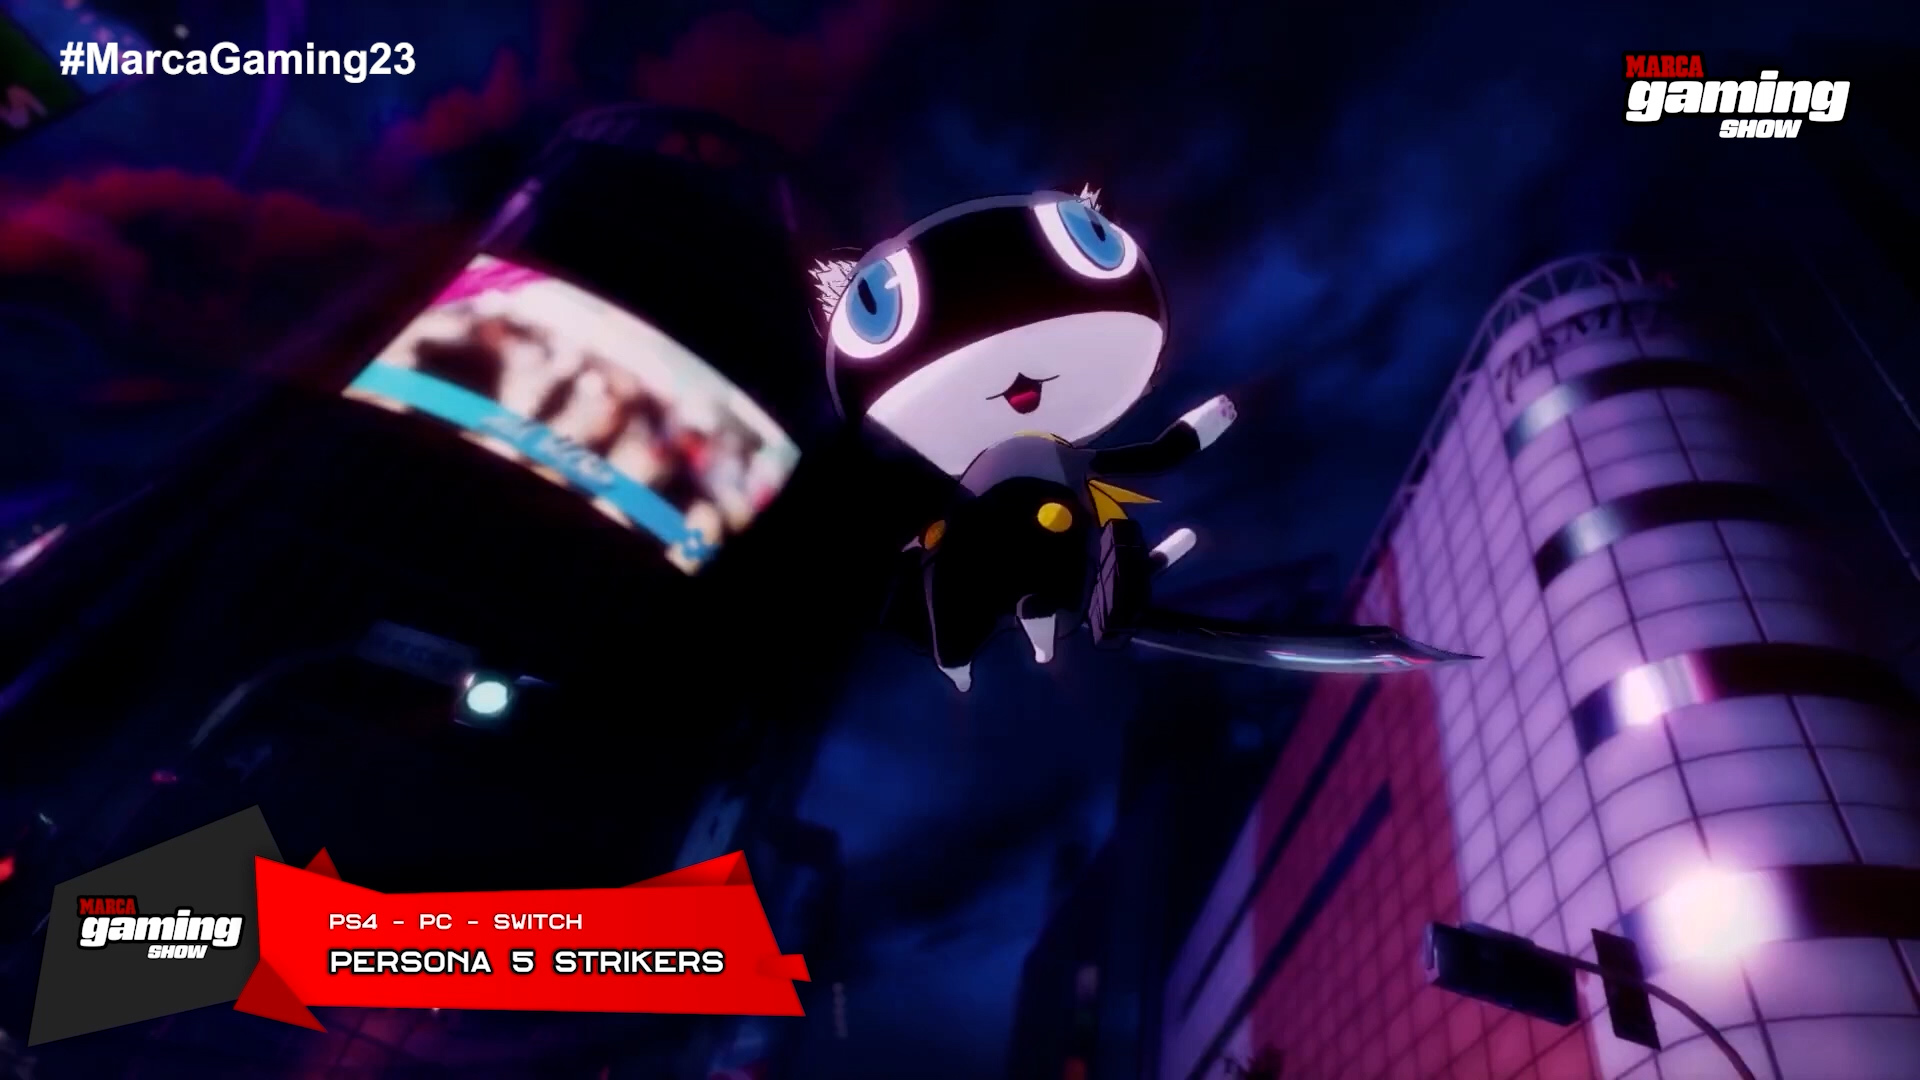 Persona 5 Strikers (PC - PS4 - SWITCH)